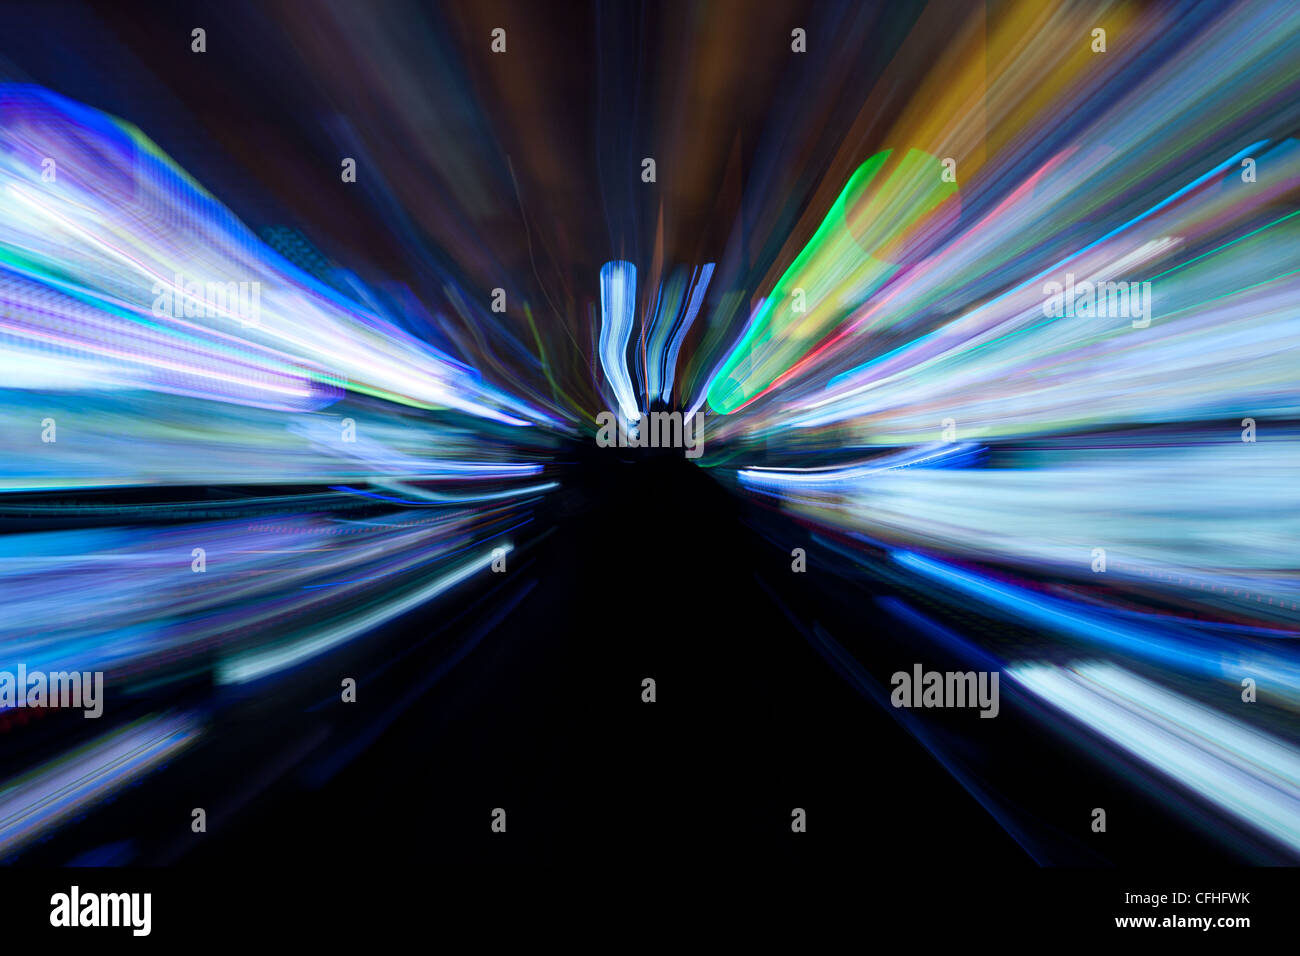 light trails from slot machines in casino,las vegas,usa - Stock Image